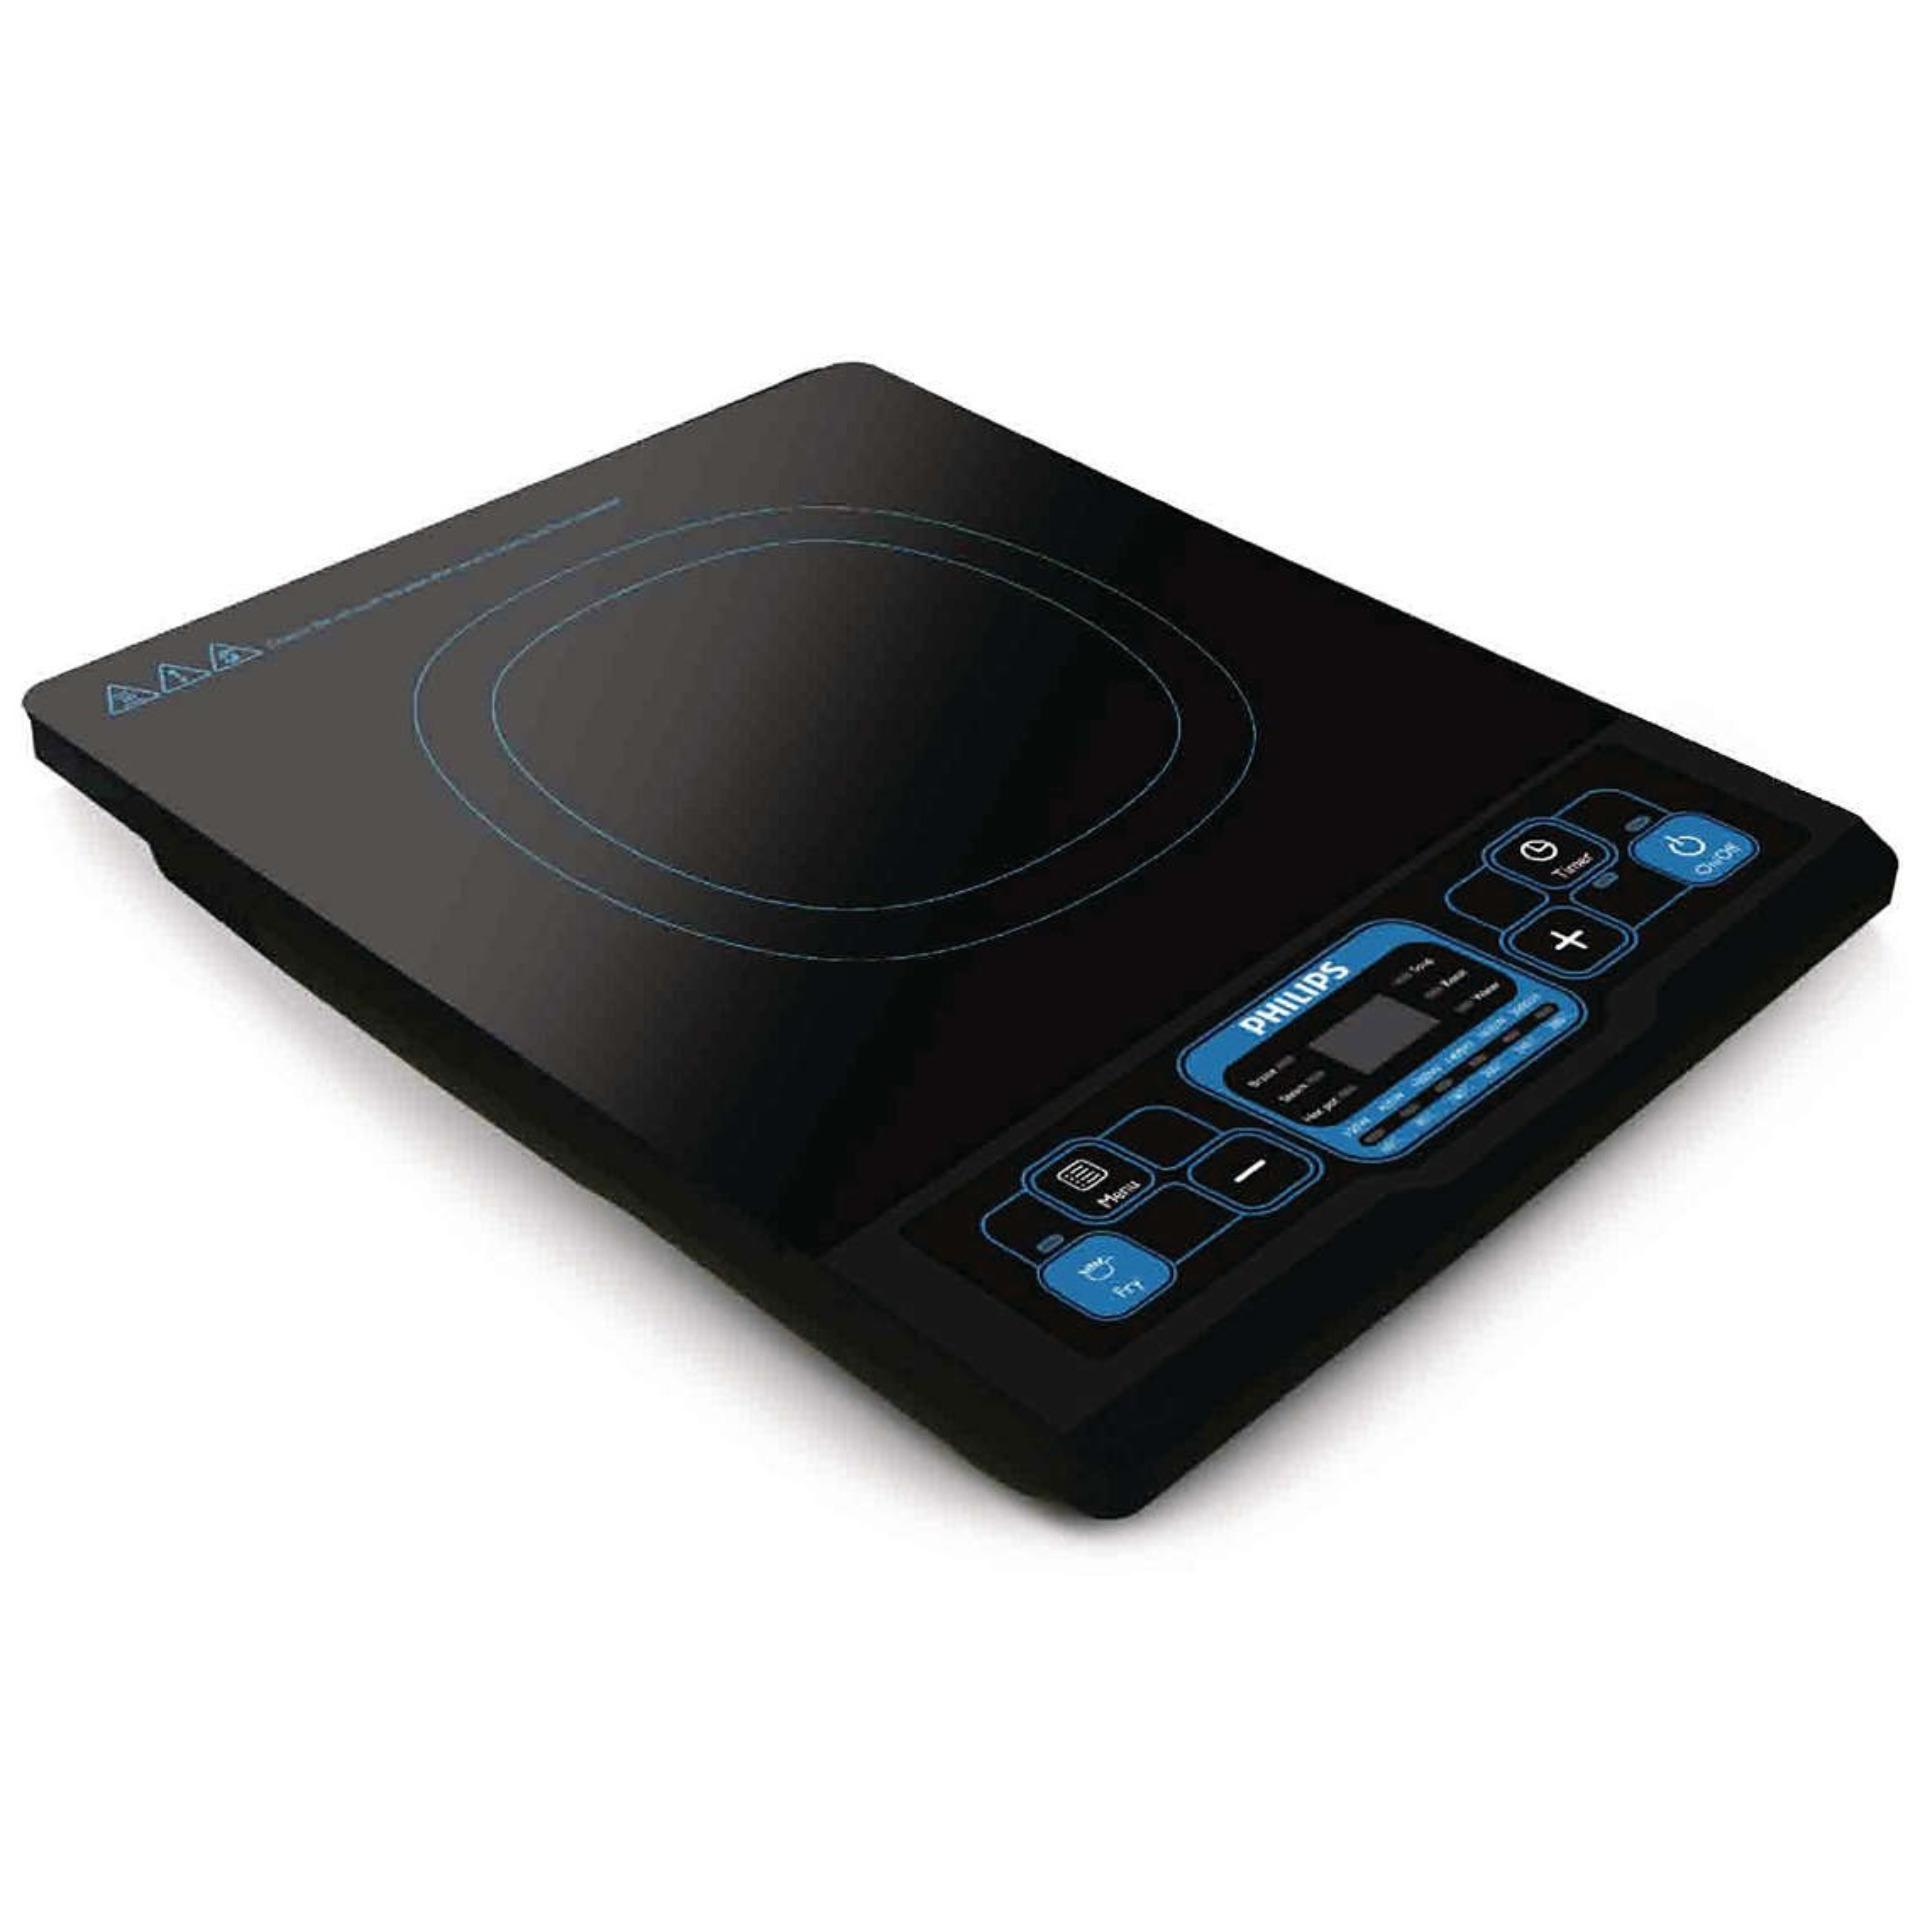 Sale Philips Hd4921 62 Daily Collection Induction Cooker With Free Pot Philips Branded